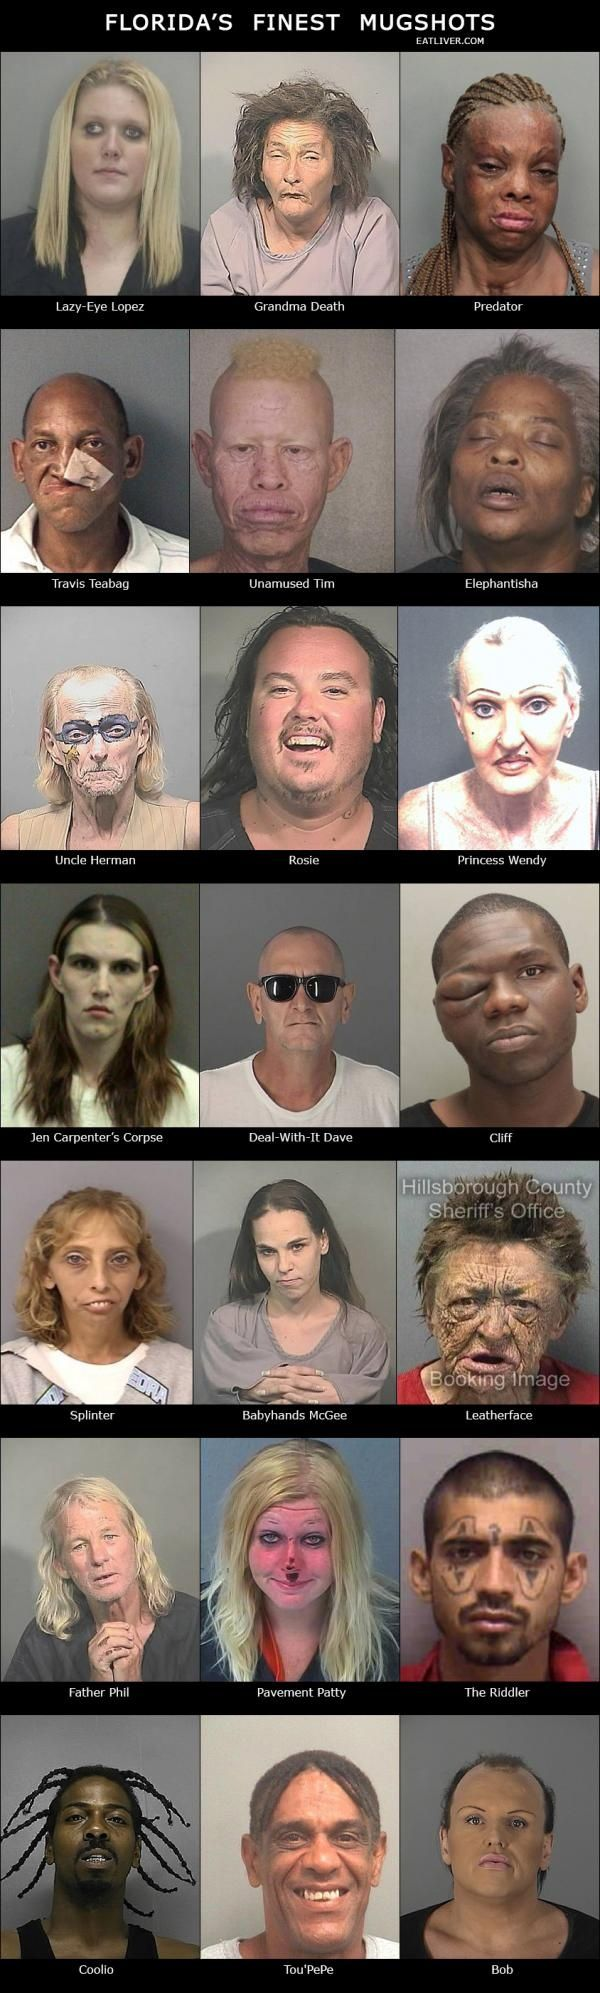 Florida's Finest Mugshots – Seriously, For Real?